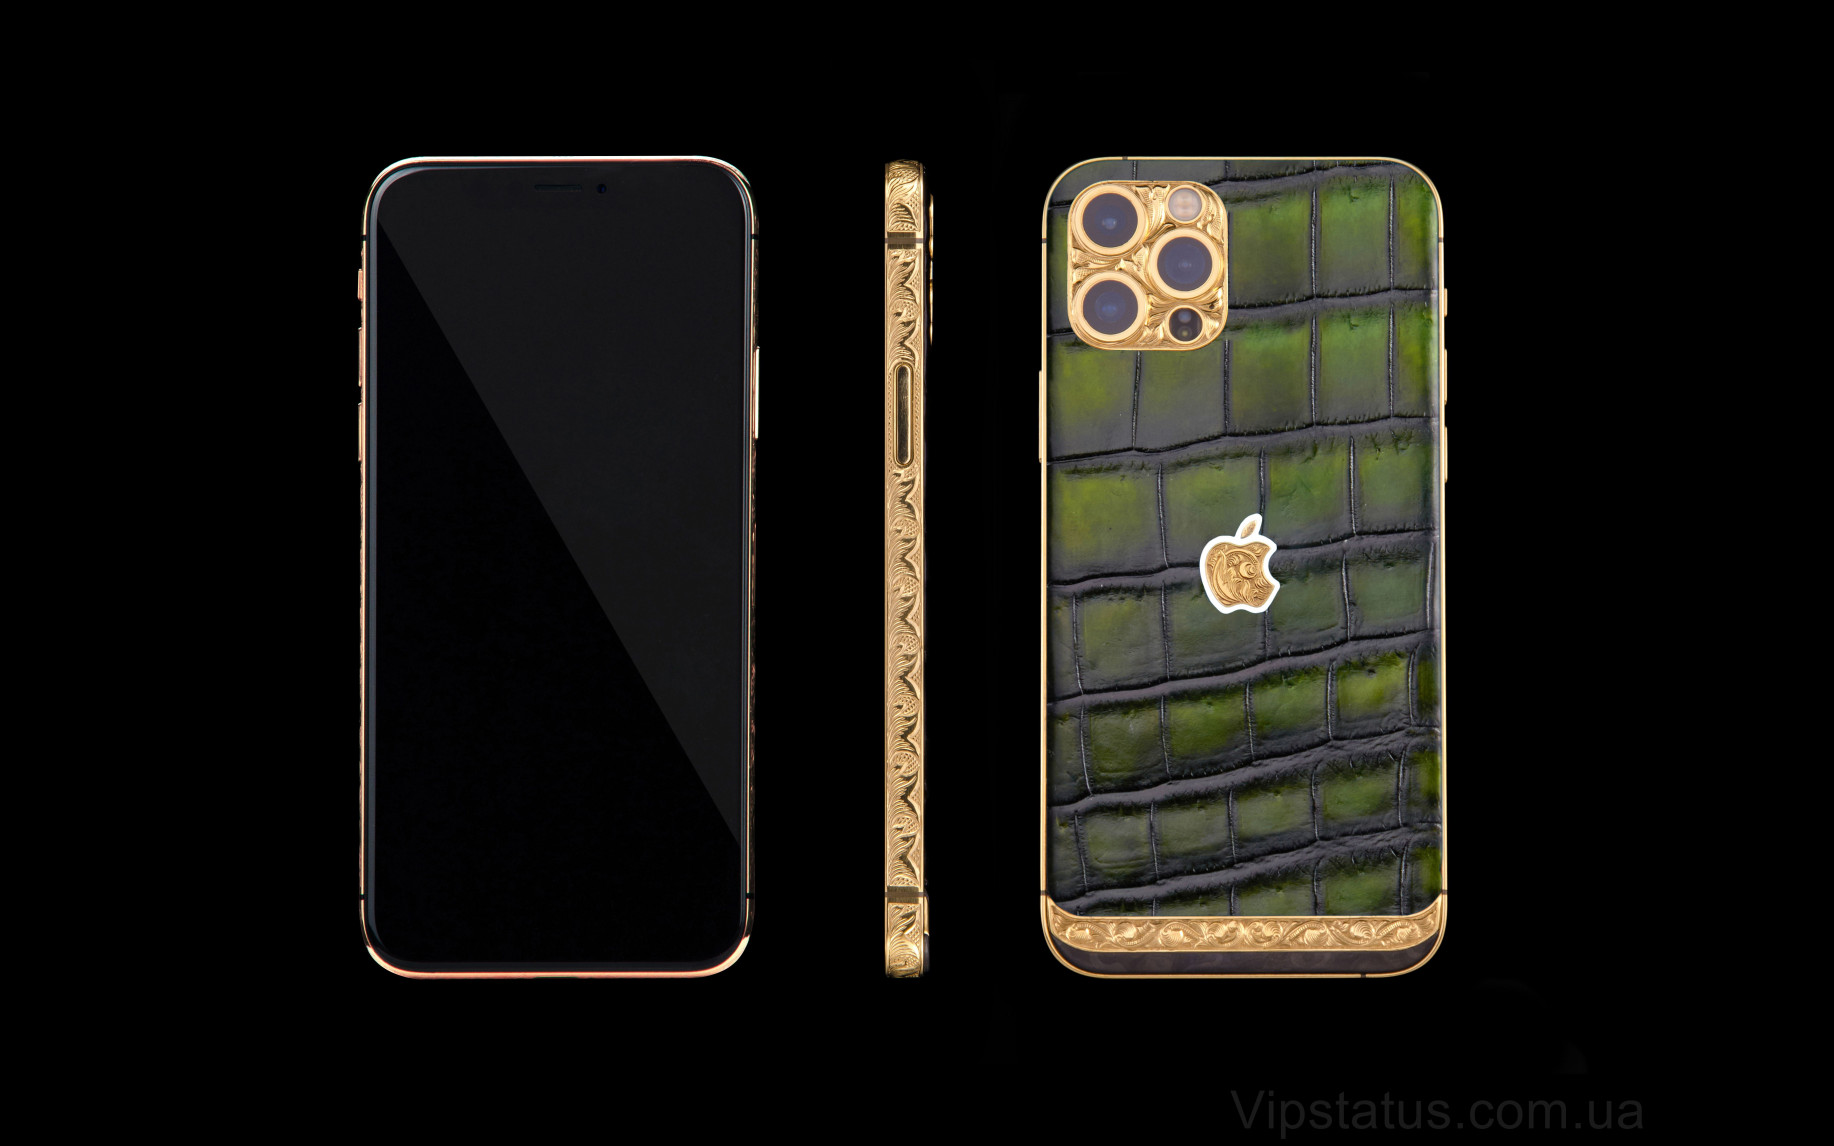 Elite Vintage Gold IPHONE 12 PRO MAX 512 GB Vintage Gold IPHONE 12 PRO MAX 512 GB image 4